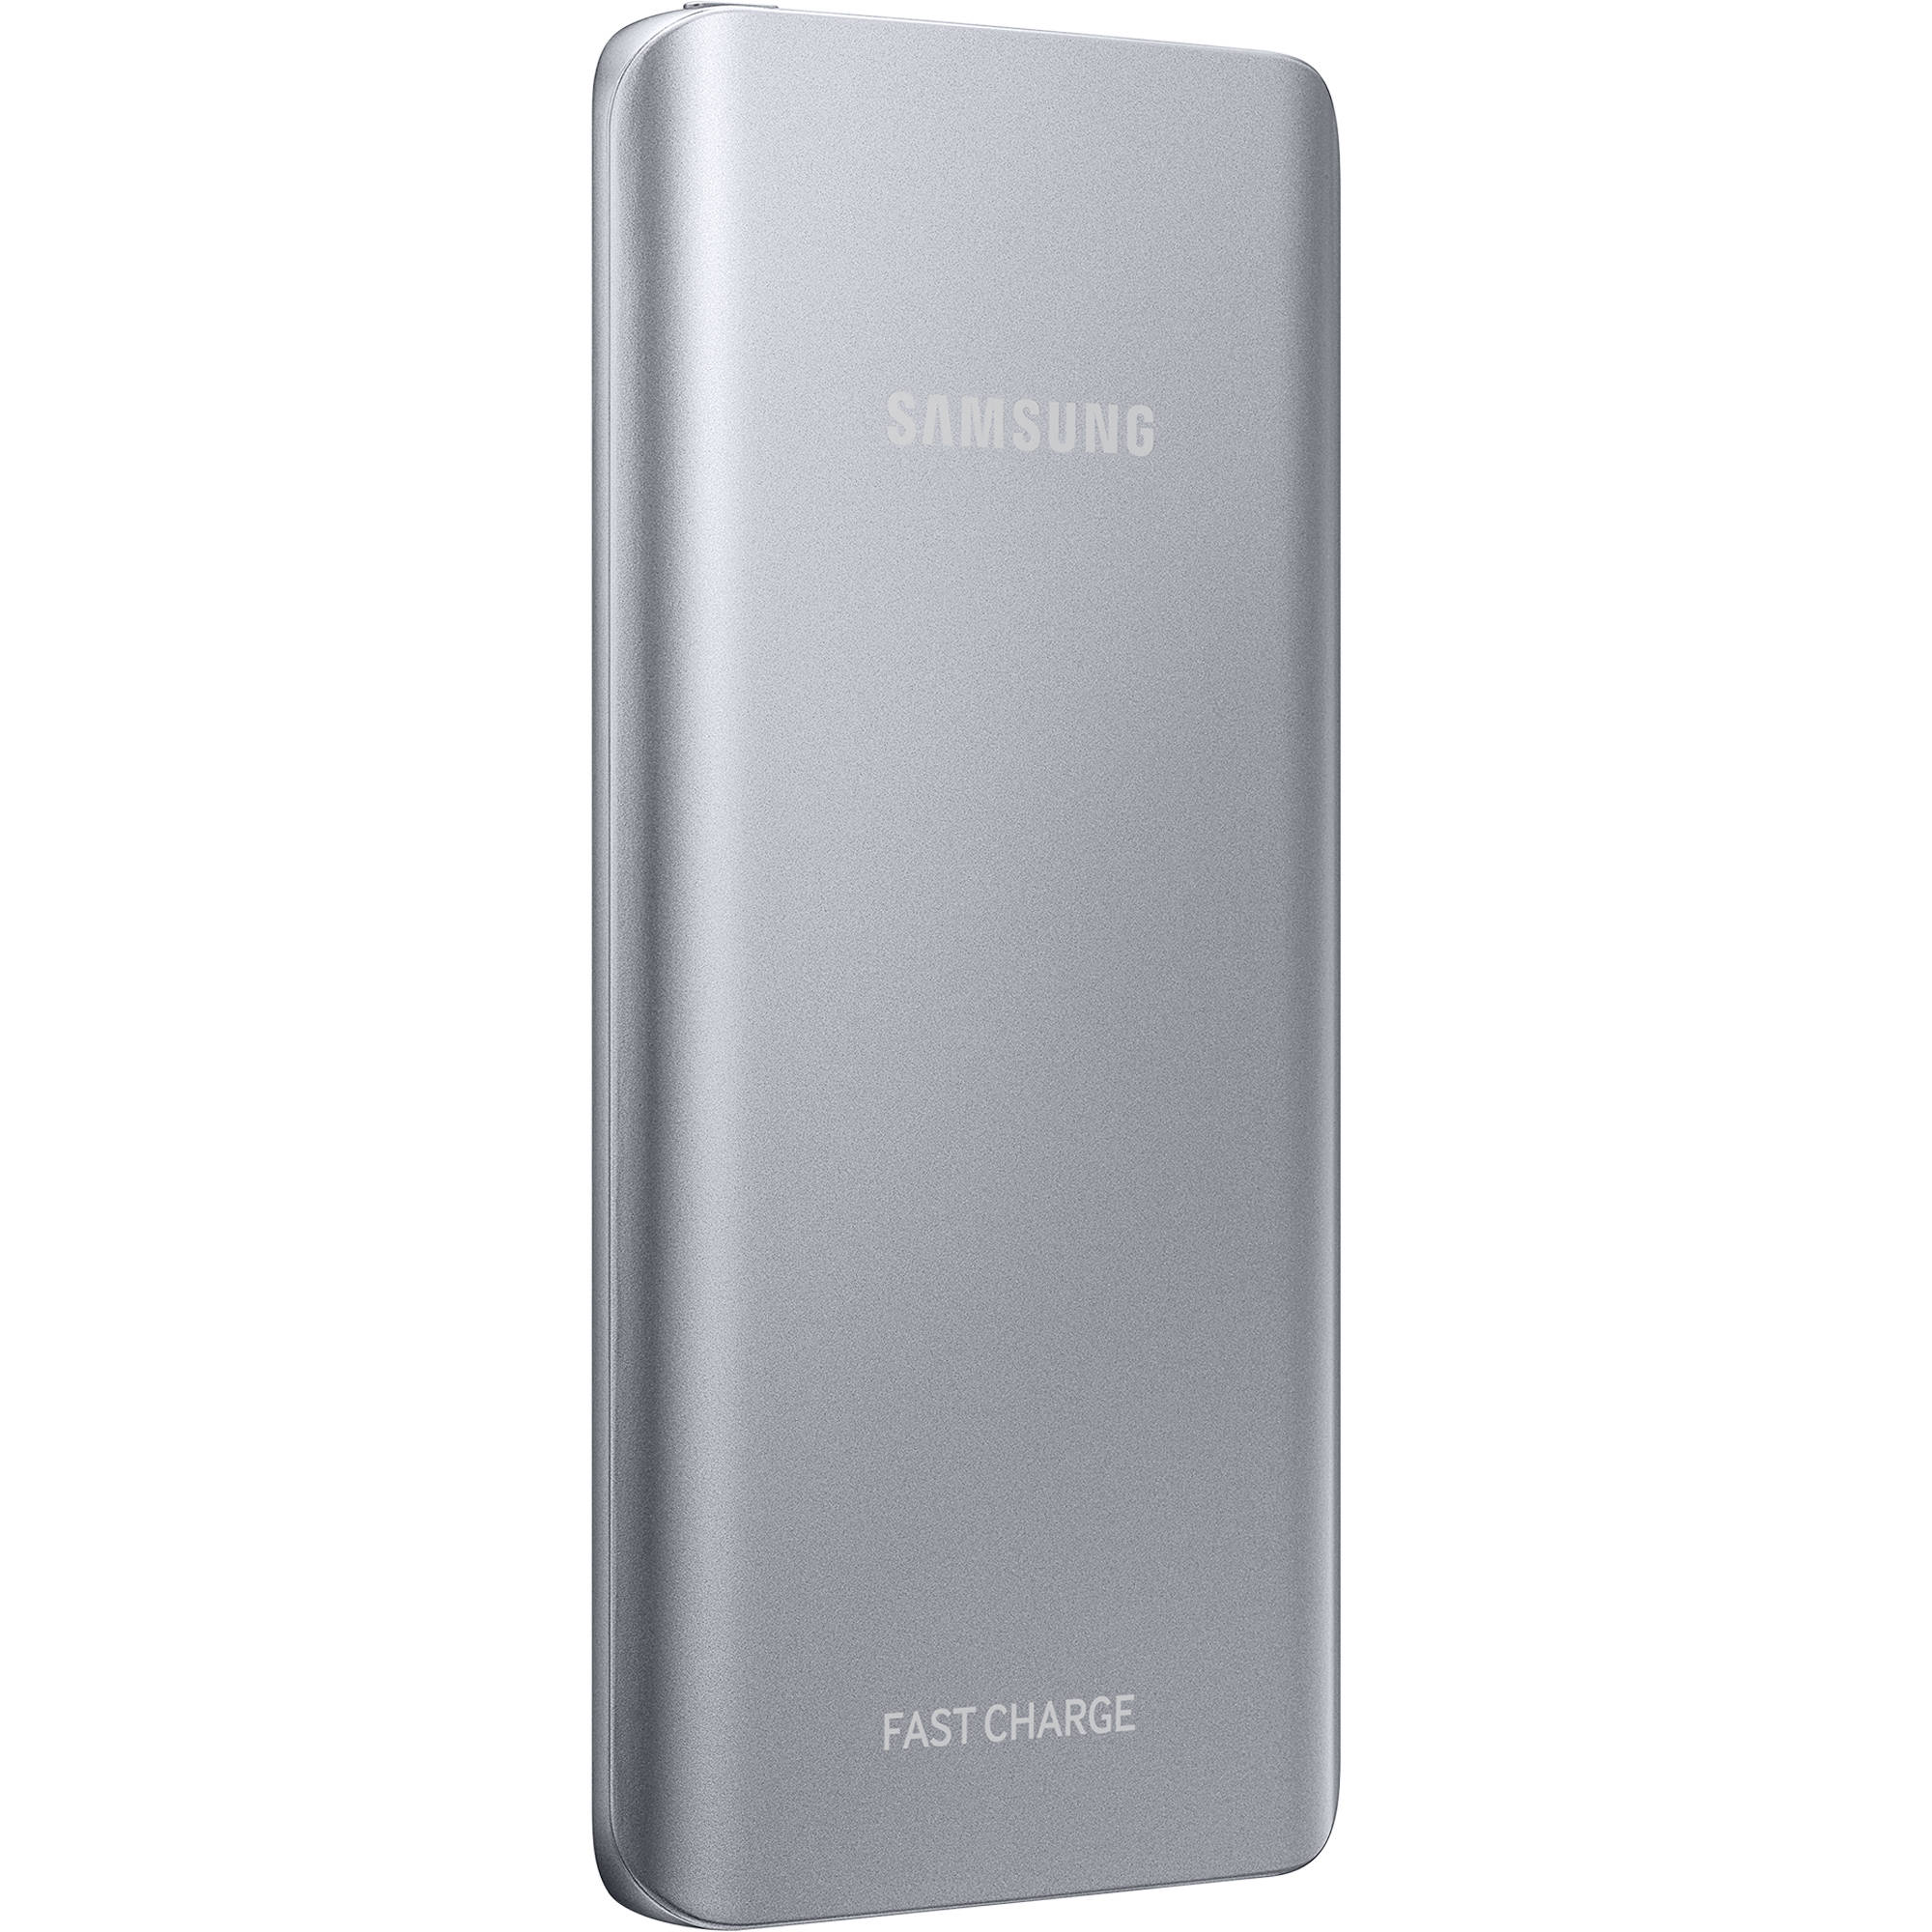 Samsung 5200mah Fast Charge Battery Pack Silver Eb Pn920usegus